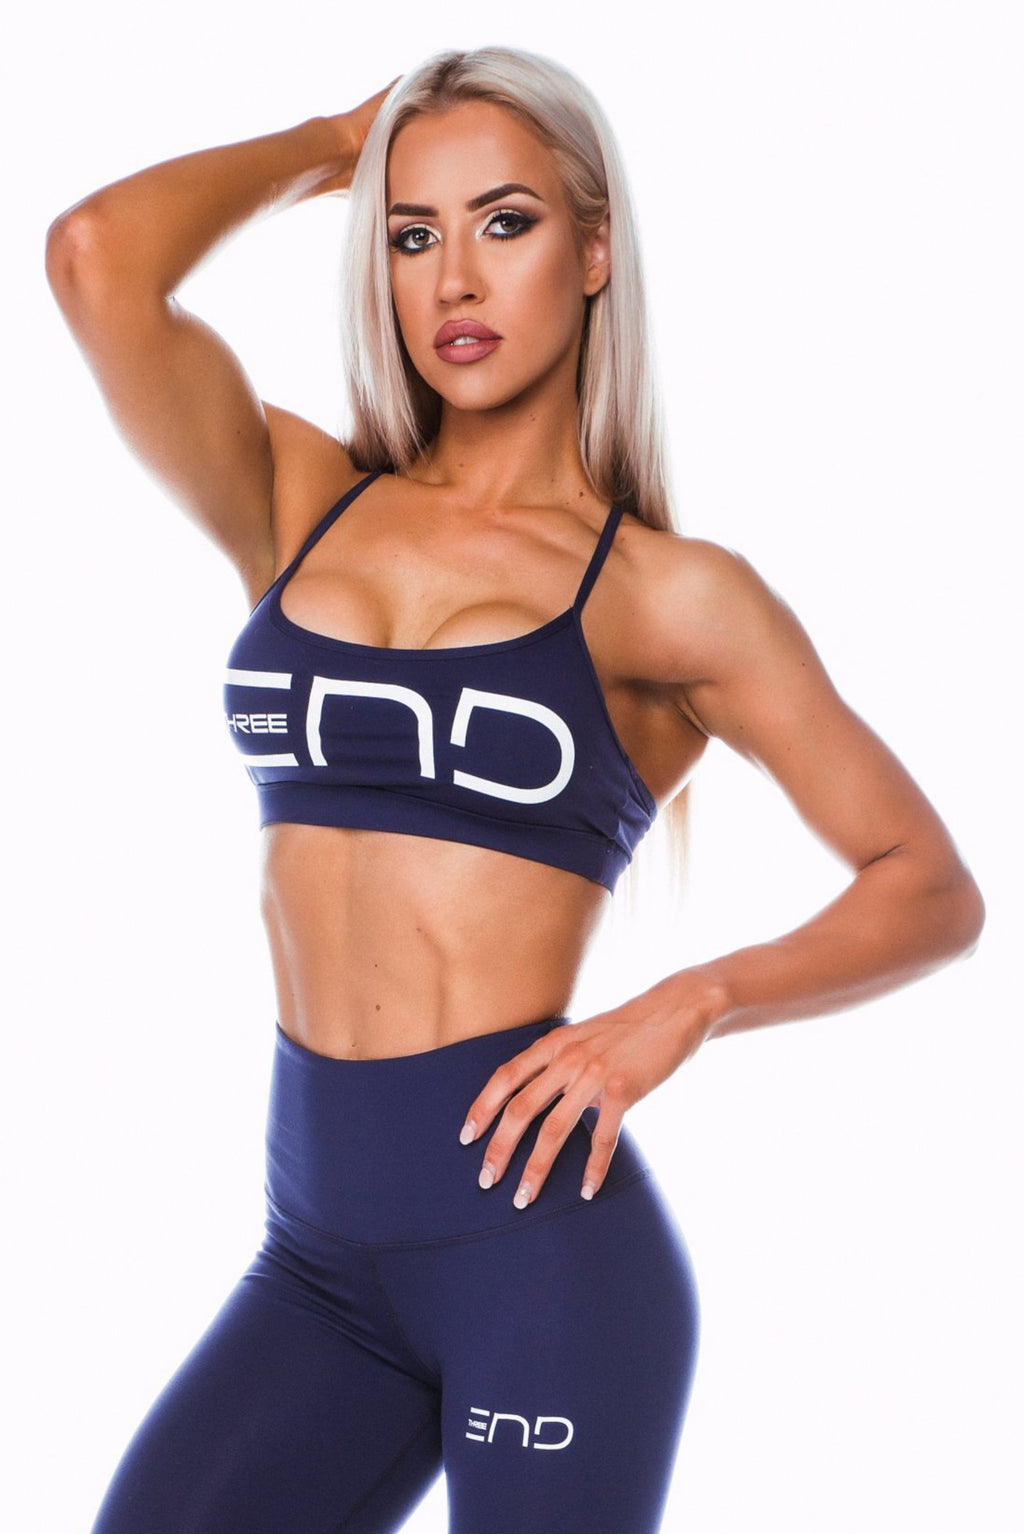 BOSS SPORTS BRA - NAVY